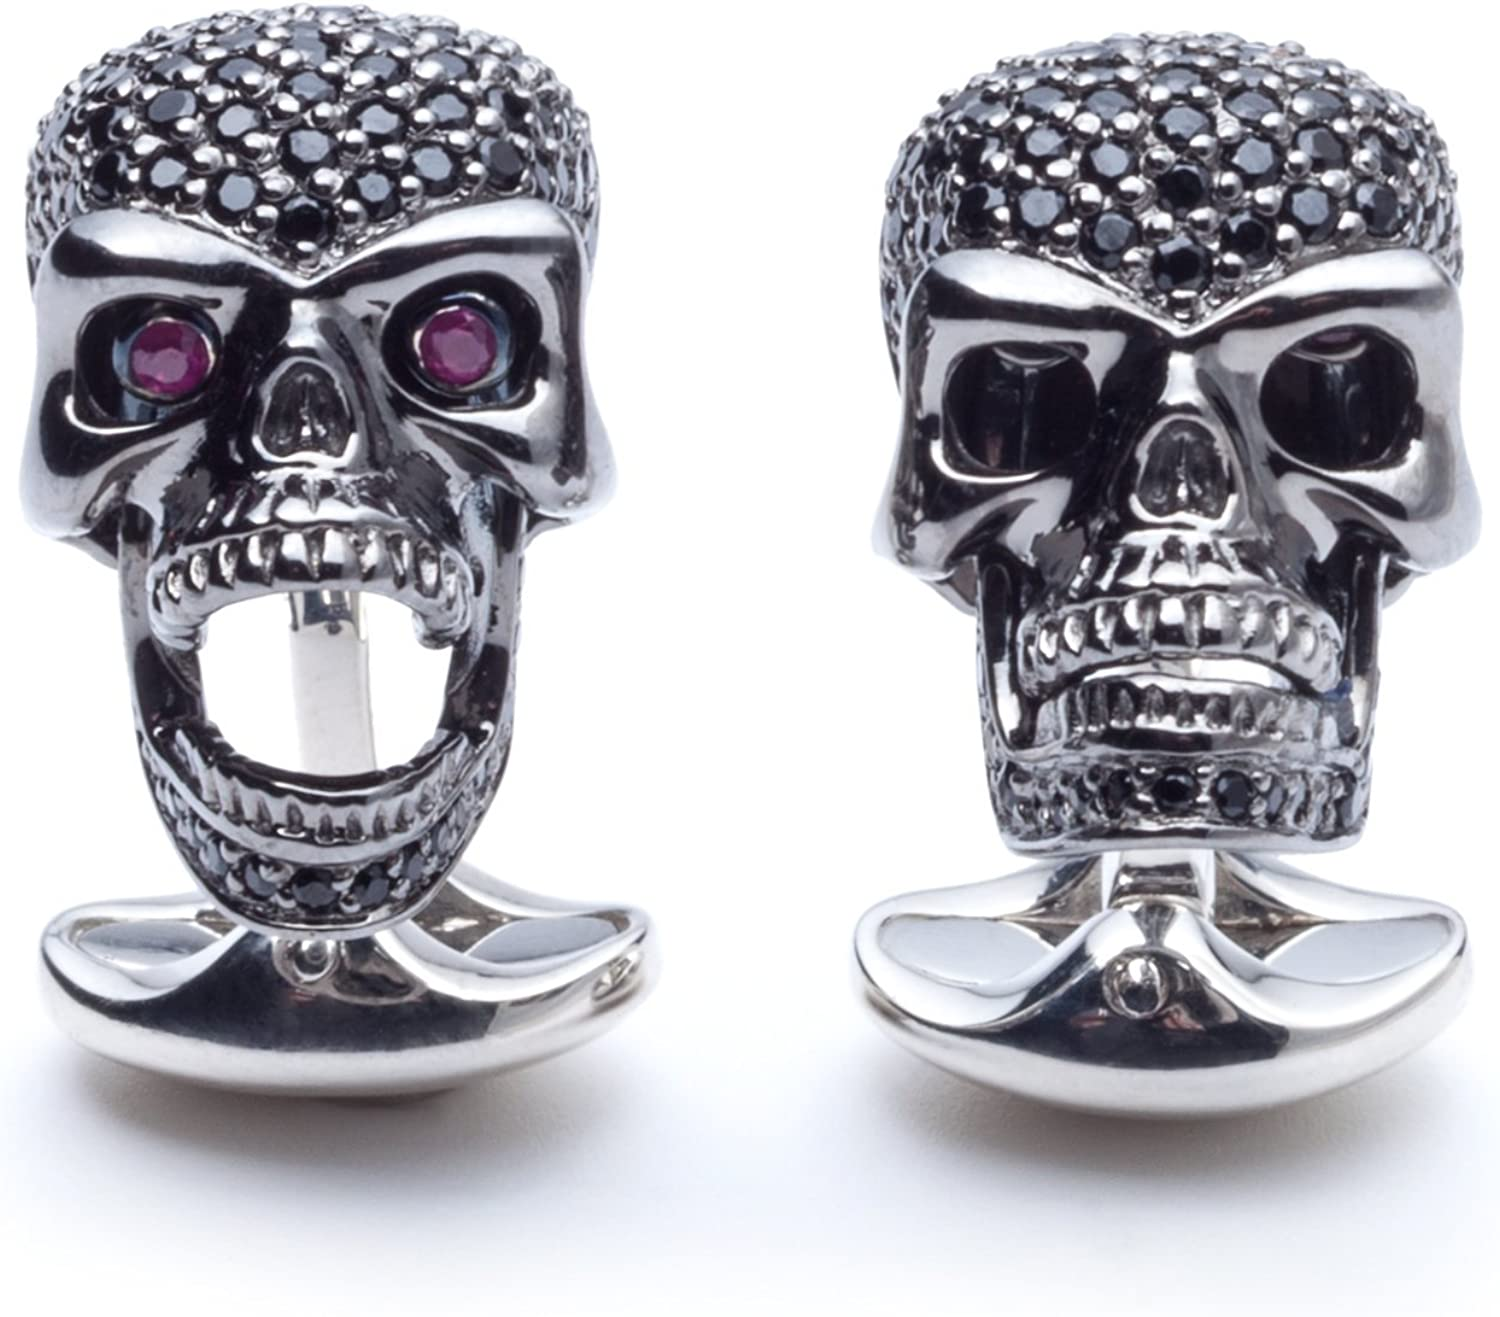 Deakin and Outstanding Francis Sterling Silver Spinel Skull 2021 autumn winter new Cufflinks Black